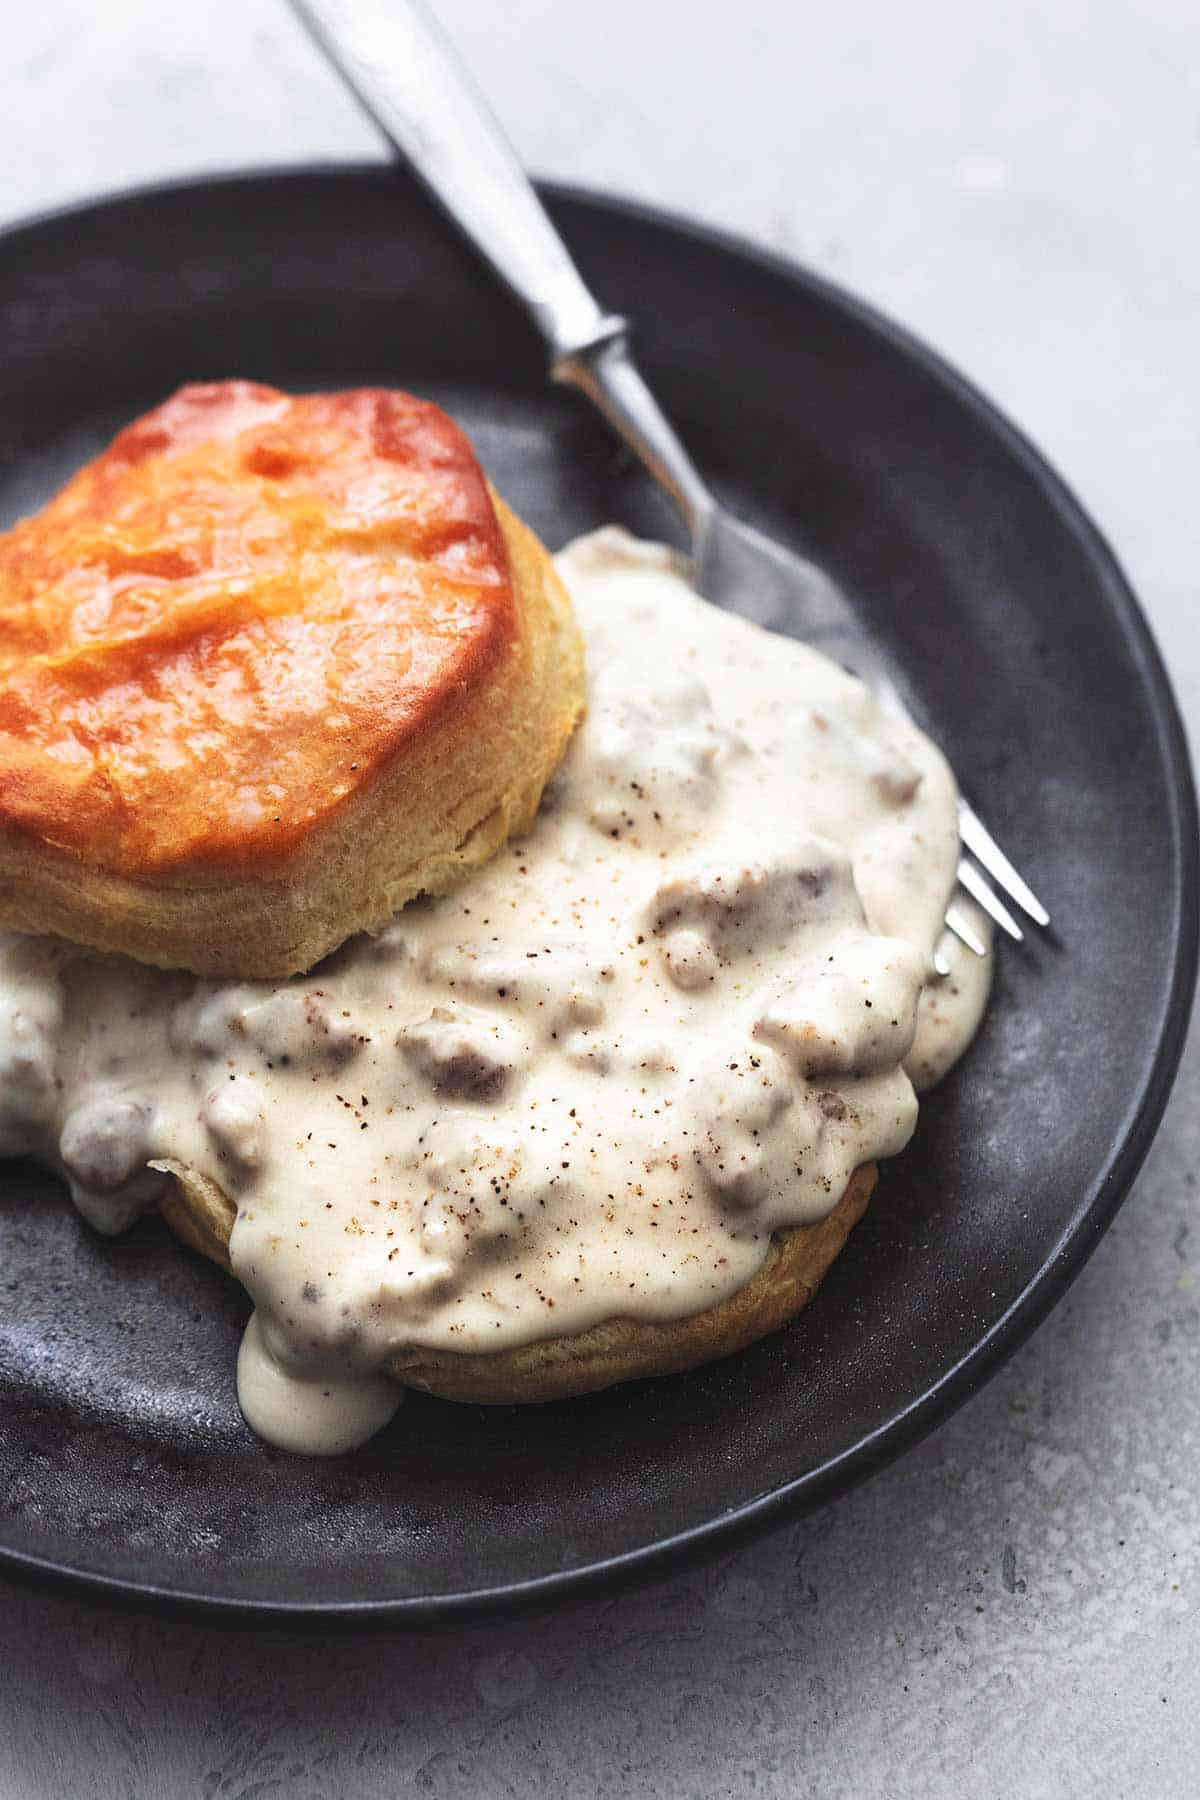 biscuits and sausage gravy with fork on plate